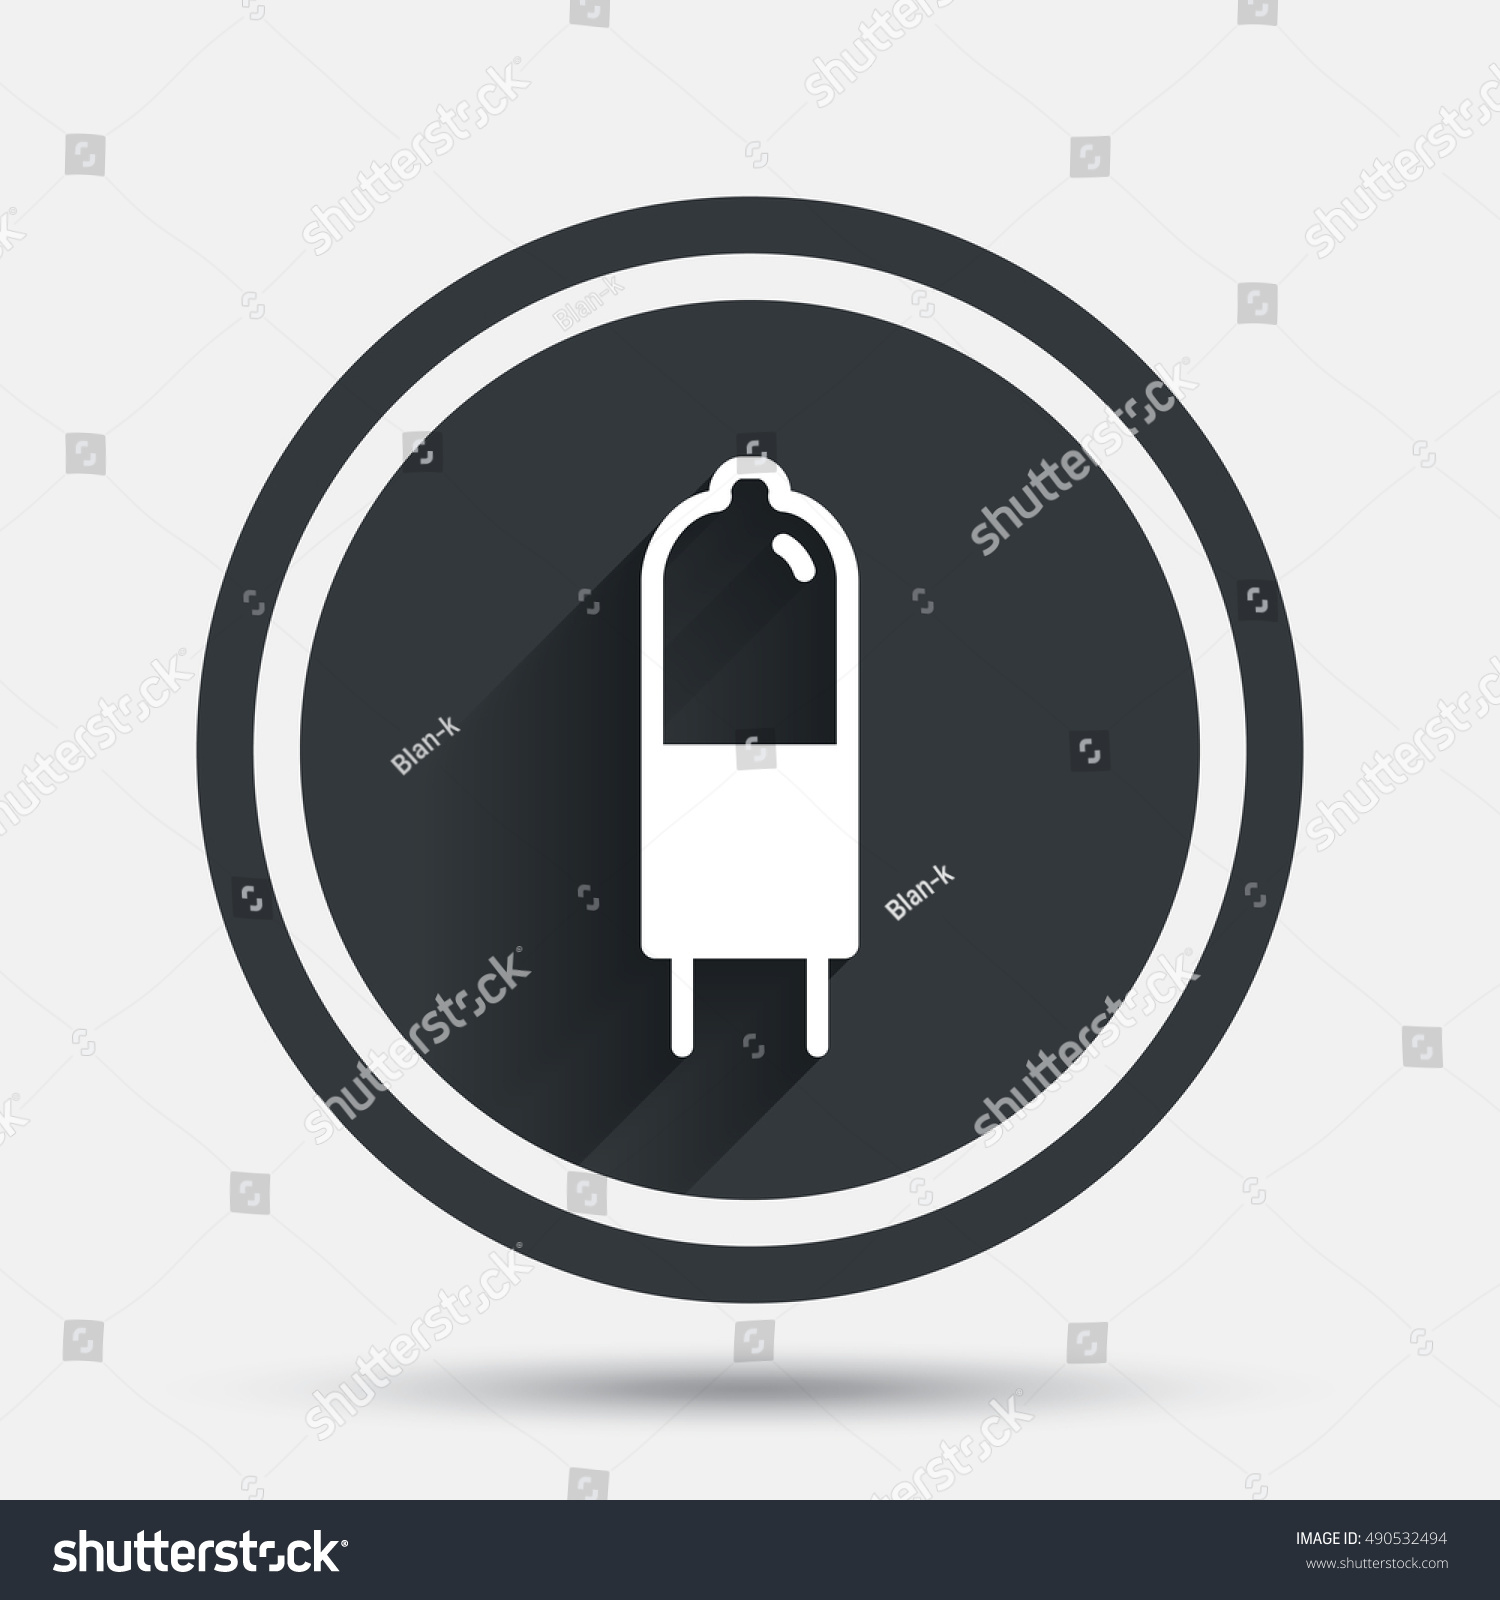 Led Symbol Clipart Best Component Light Emitting Diode Related Circuit Diagram Stunning Electrical For Photos Ideas